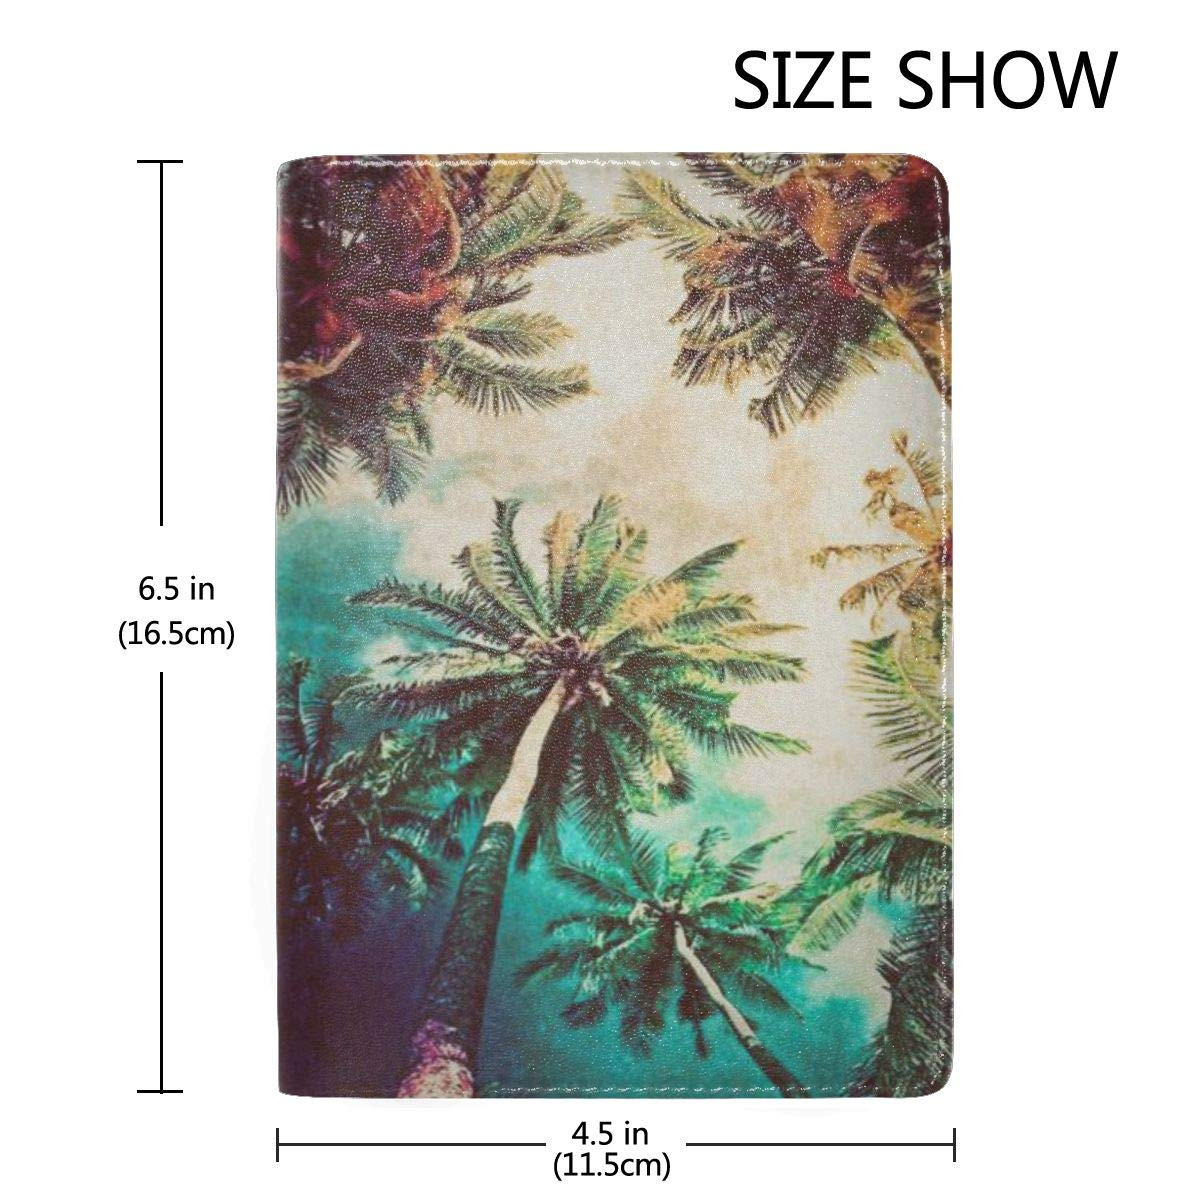 Retro Watercolor Silhouettes Of Palm Trees Fashion Leather Passport Holder Cover Case Travel Wallet 6.5 In